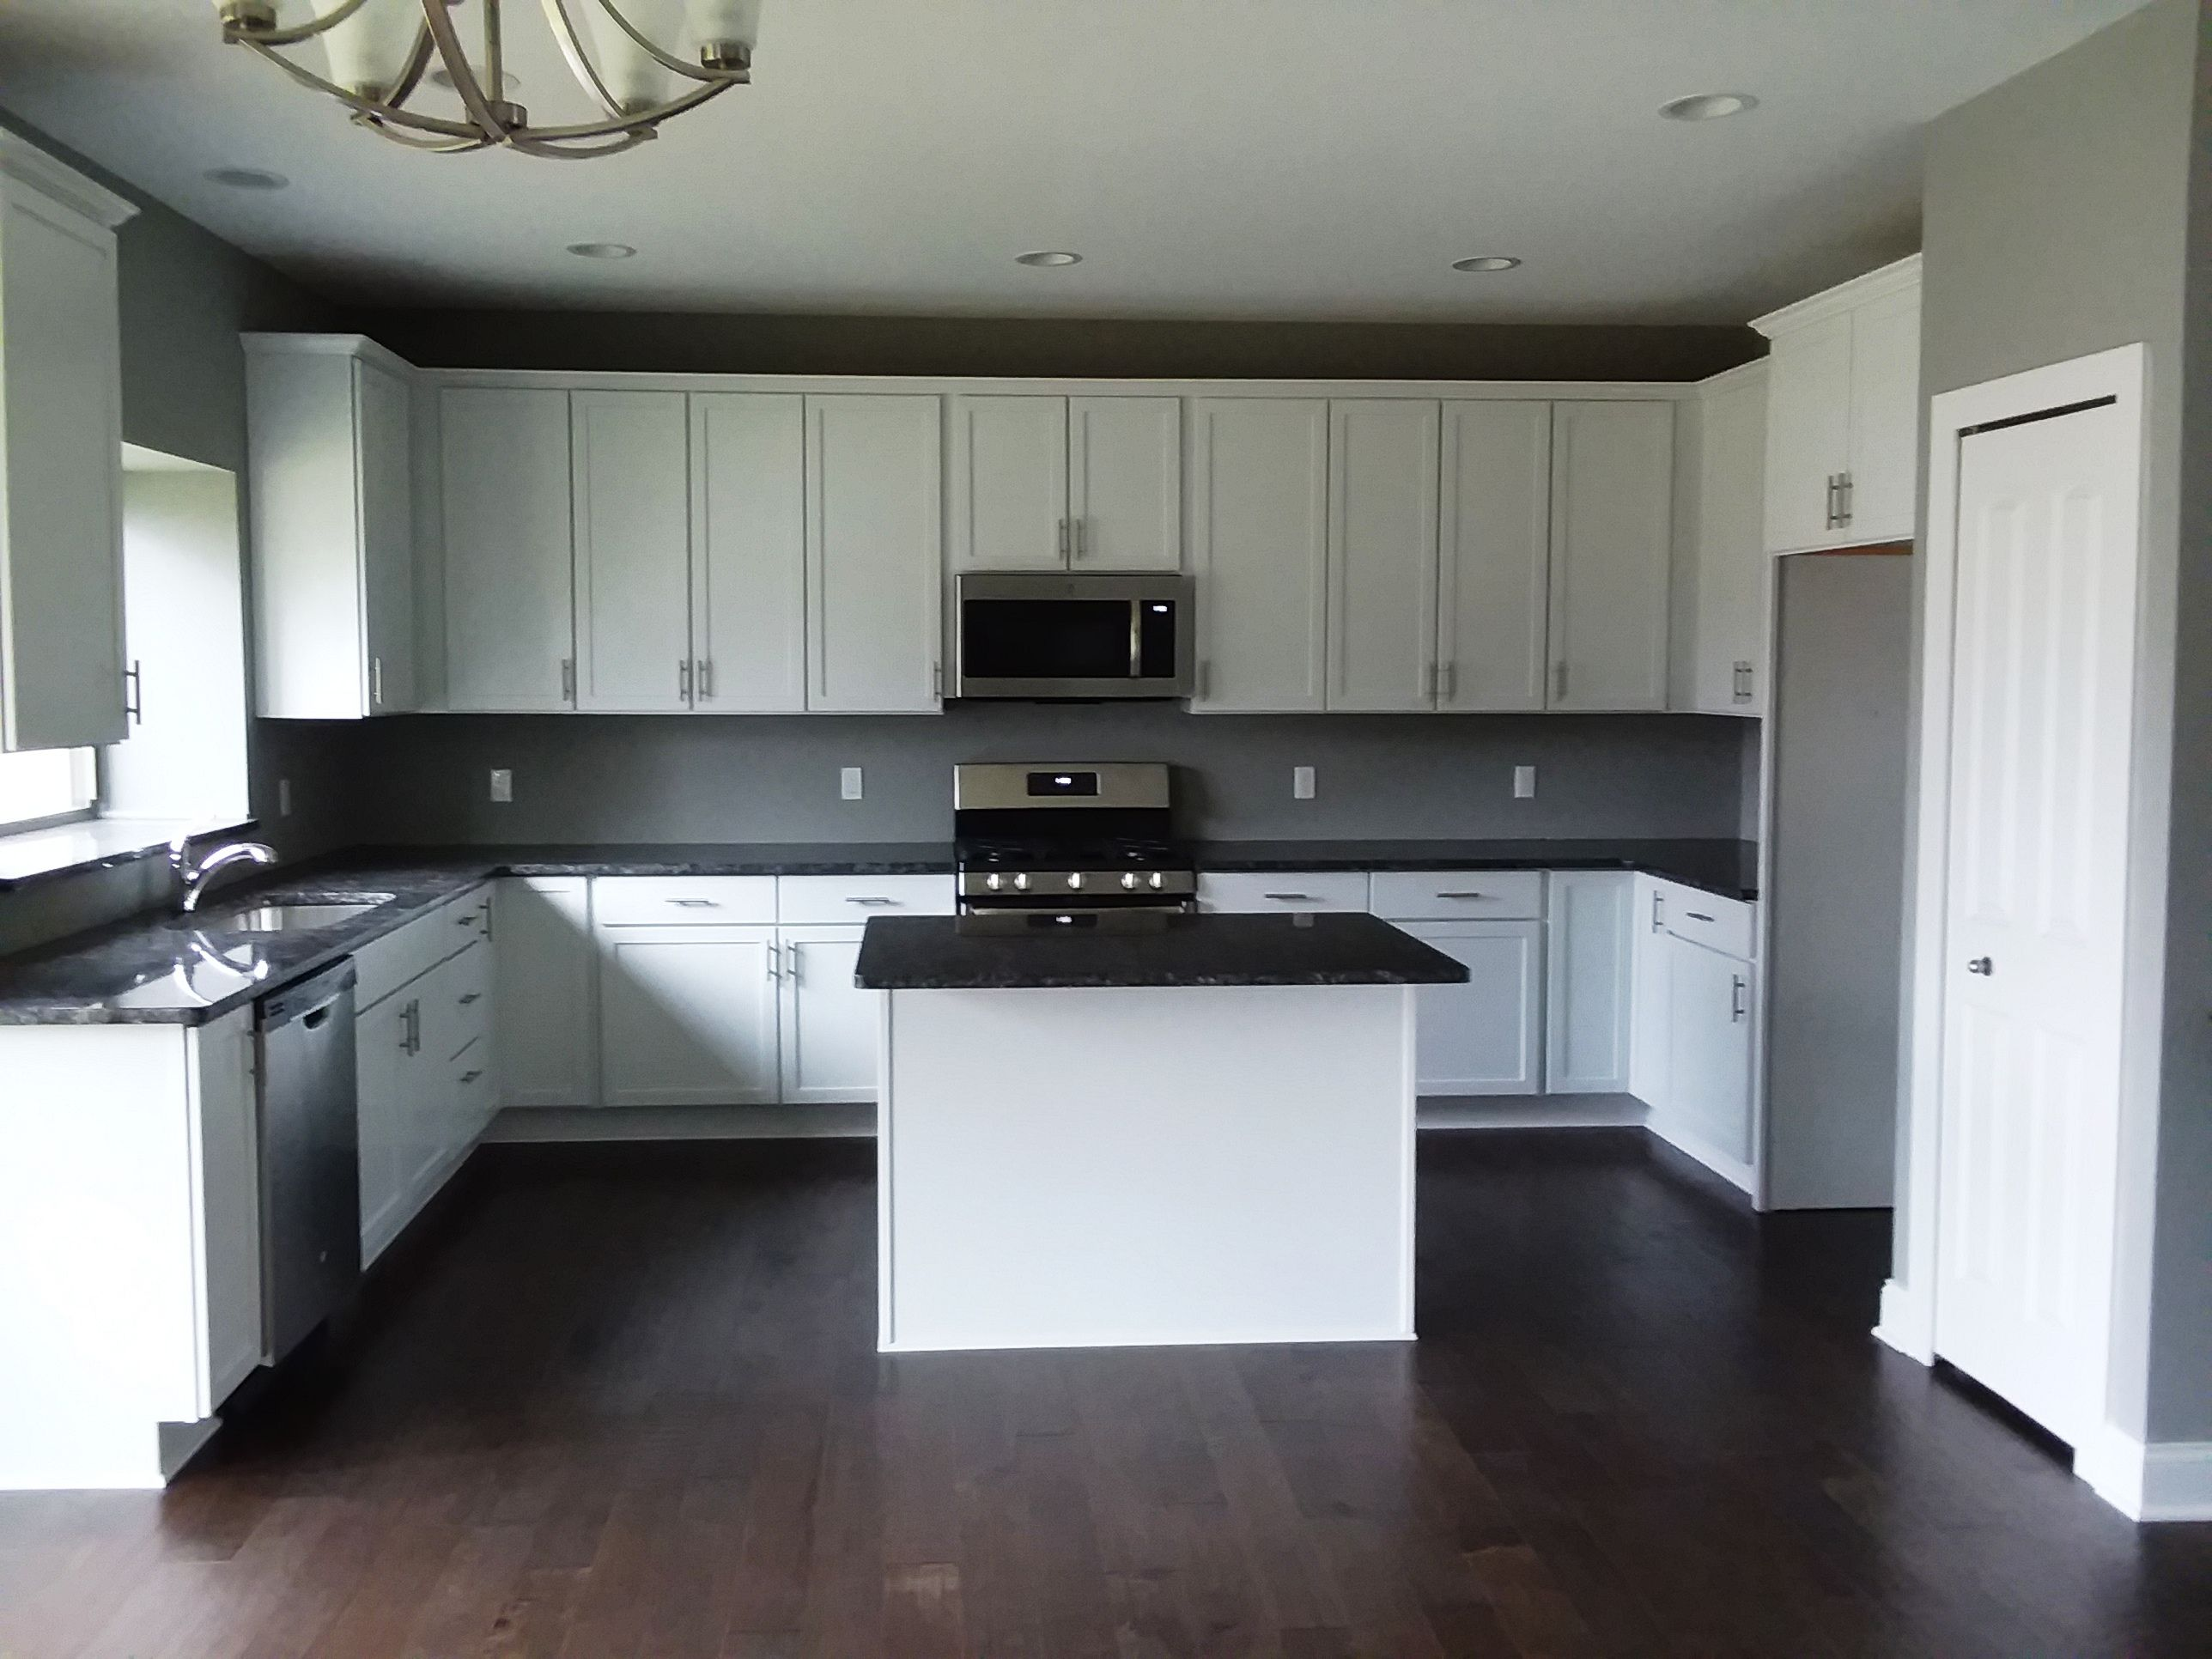 Kitchen featured in The Hampshire By Babcock Homes in Detroit, MI